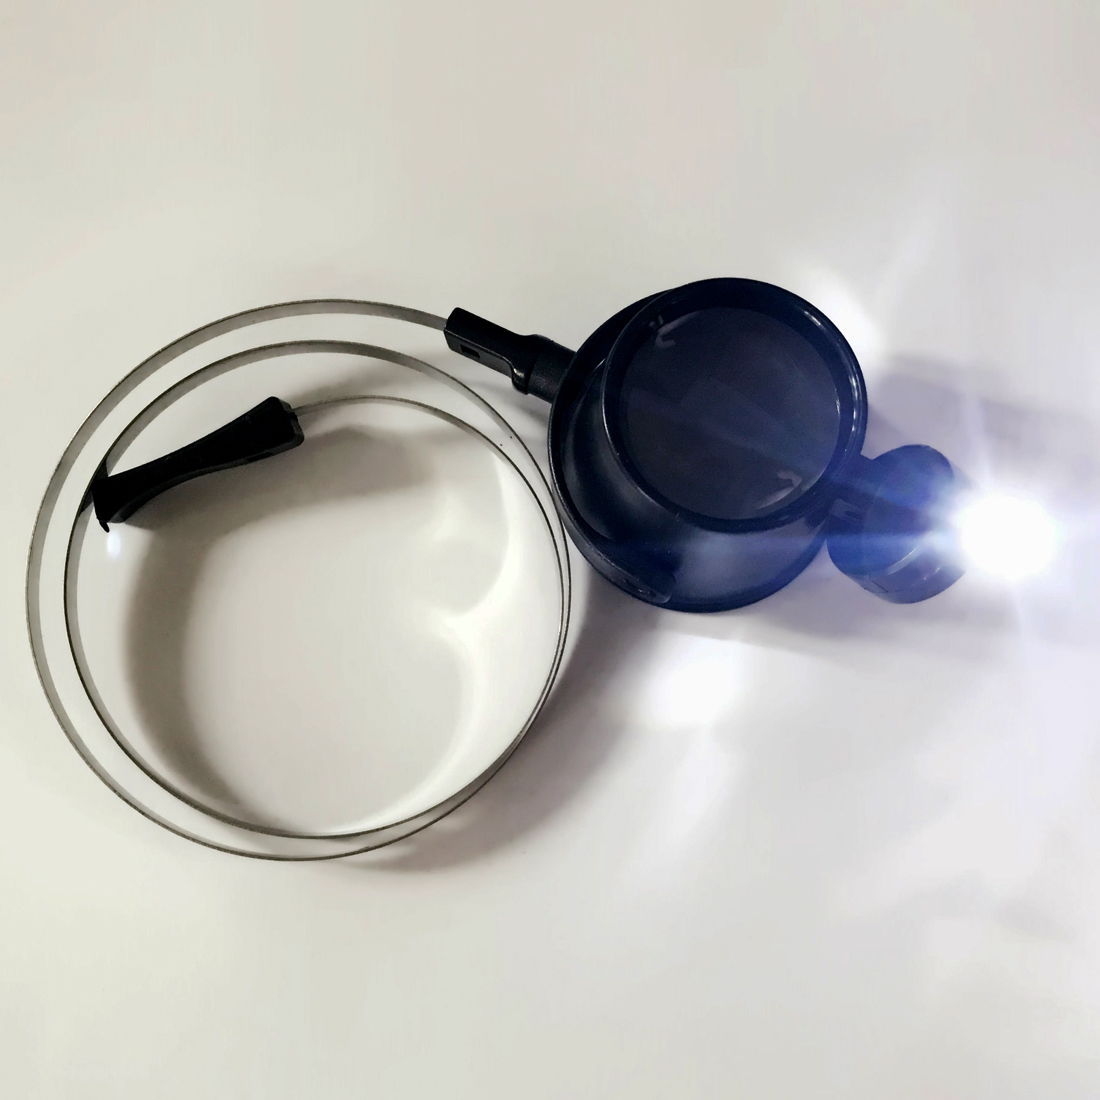 Hot!High Quality Led Lighted 15X Eye-Loupe Hands-Free Head Band Magnifier With 2CR1620 Lithium Metal Battery